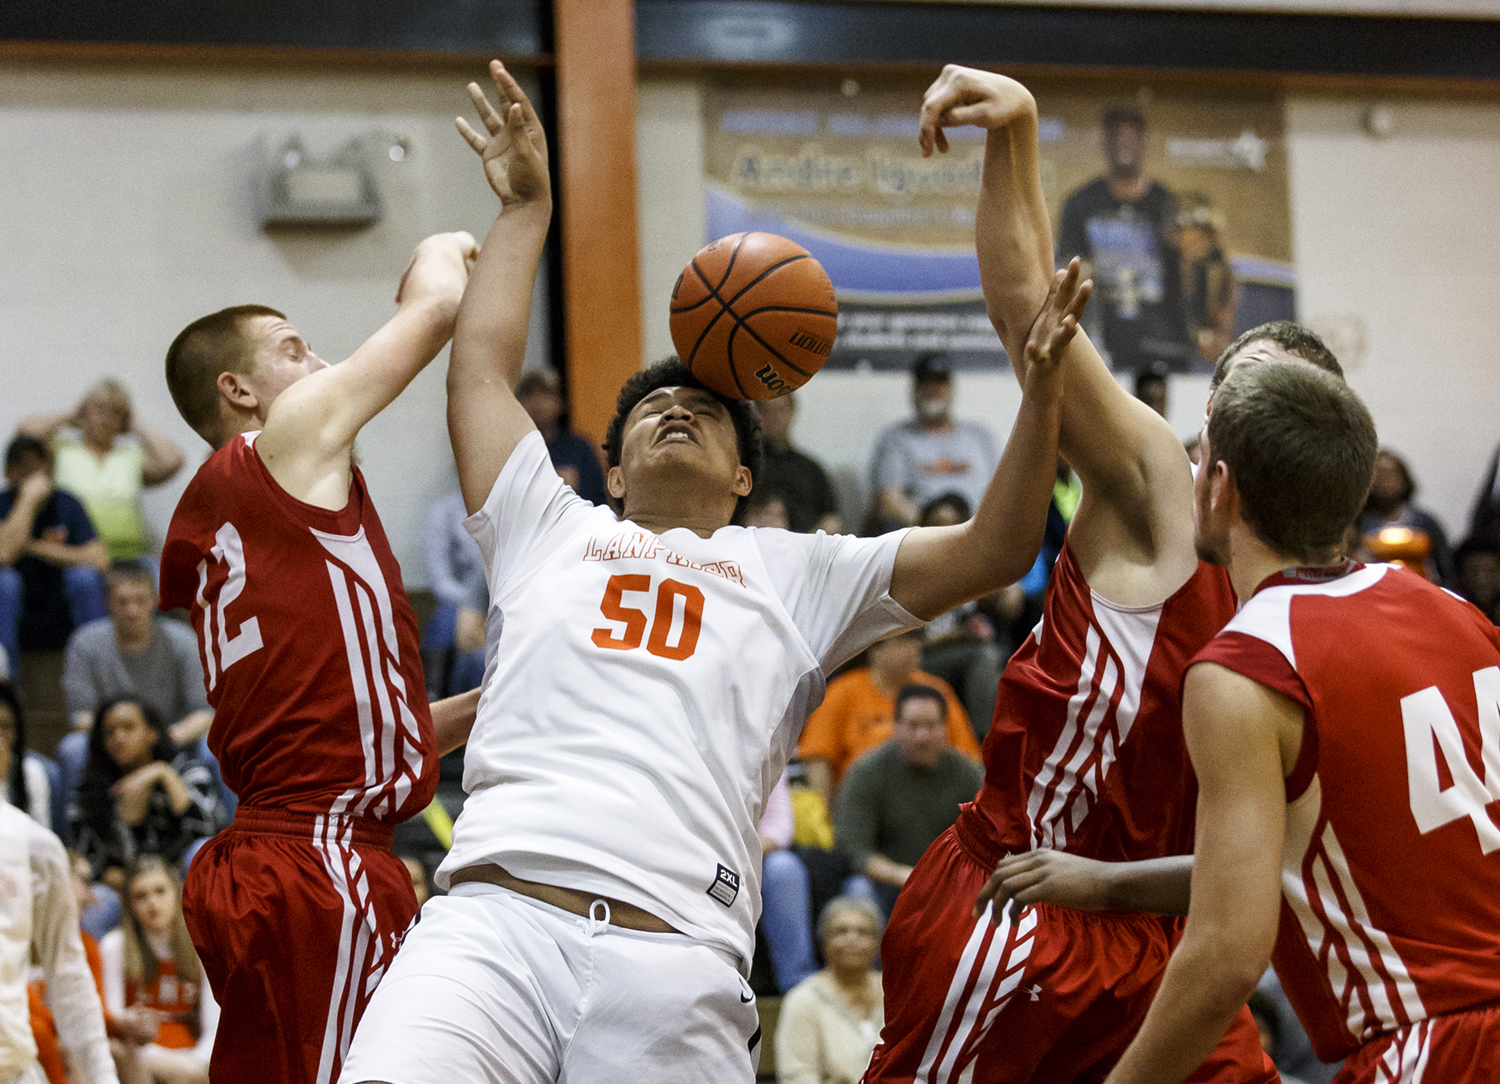 Lanphier's William Boles (50) draws the foul from Jacksonville's Brandon McCombs (12) as he went up for a shot in the second half at Lober-Nika Gymnasium, Friday, Dec. 11, 2015, in Springfield, Ill. Justin L. Fowler/The State Journal-Register